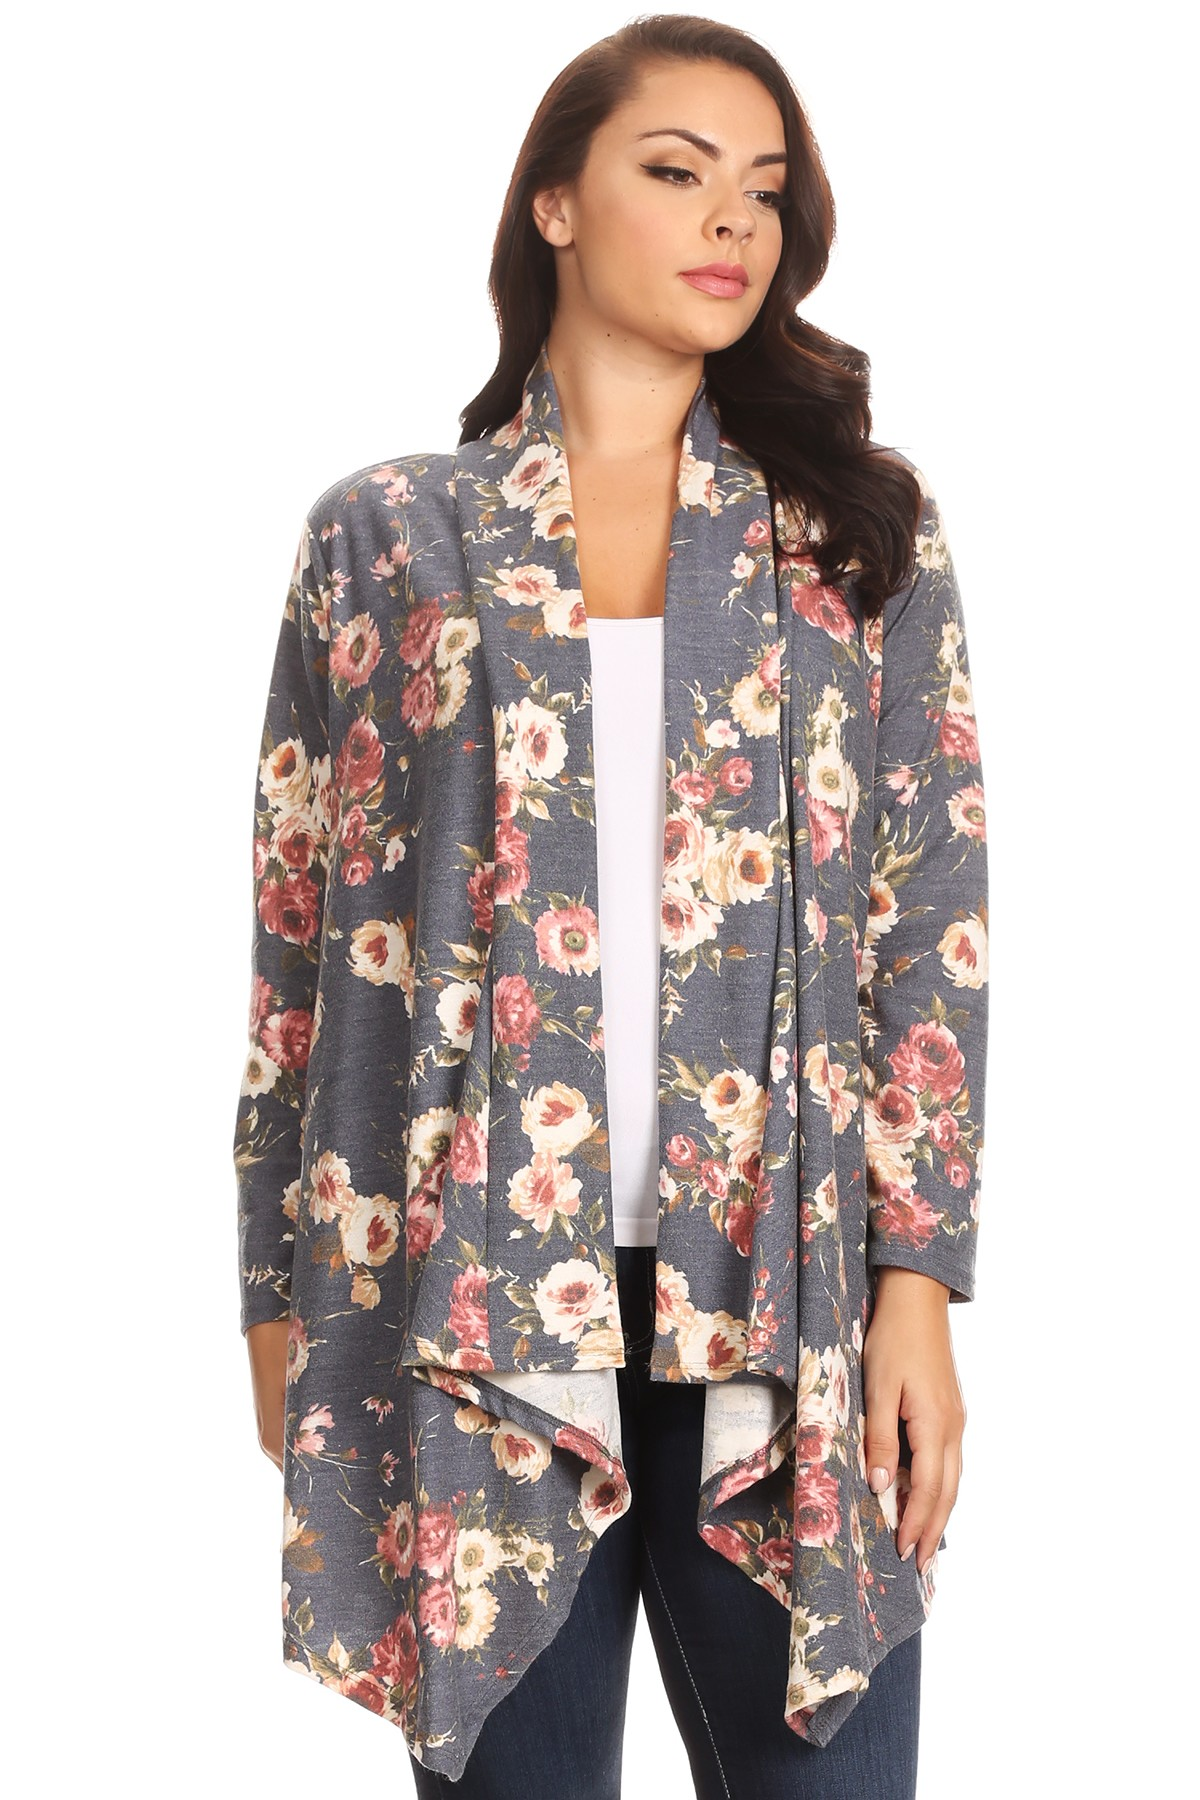 SHAWL OPEN CARDIGAN IN NAVY FLORAL